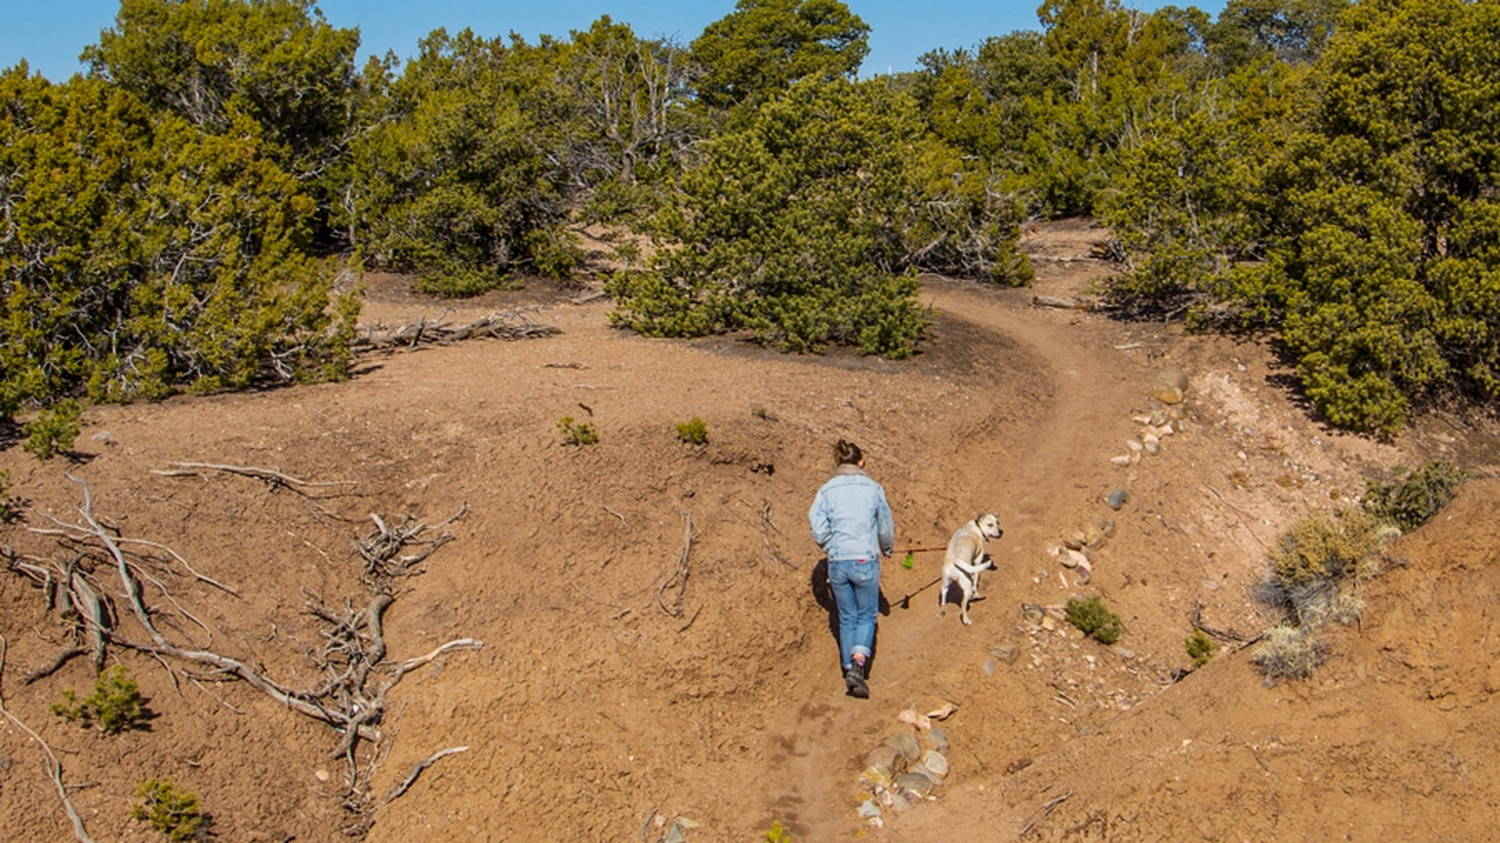 Santa Fe's Grand Unified Santa Fe Trail Organization, GUSTO for short, has spent years steadily increasing the number of pedestrian and bike trails that connect our outdoor open spaces.